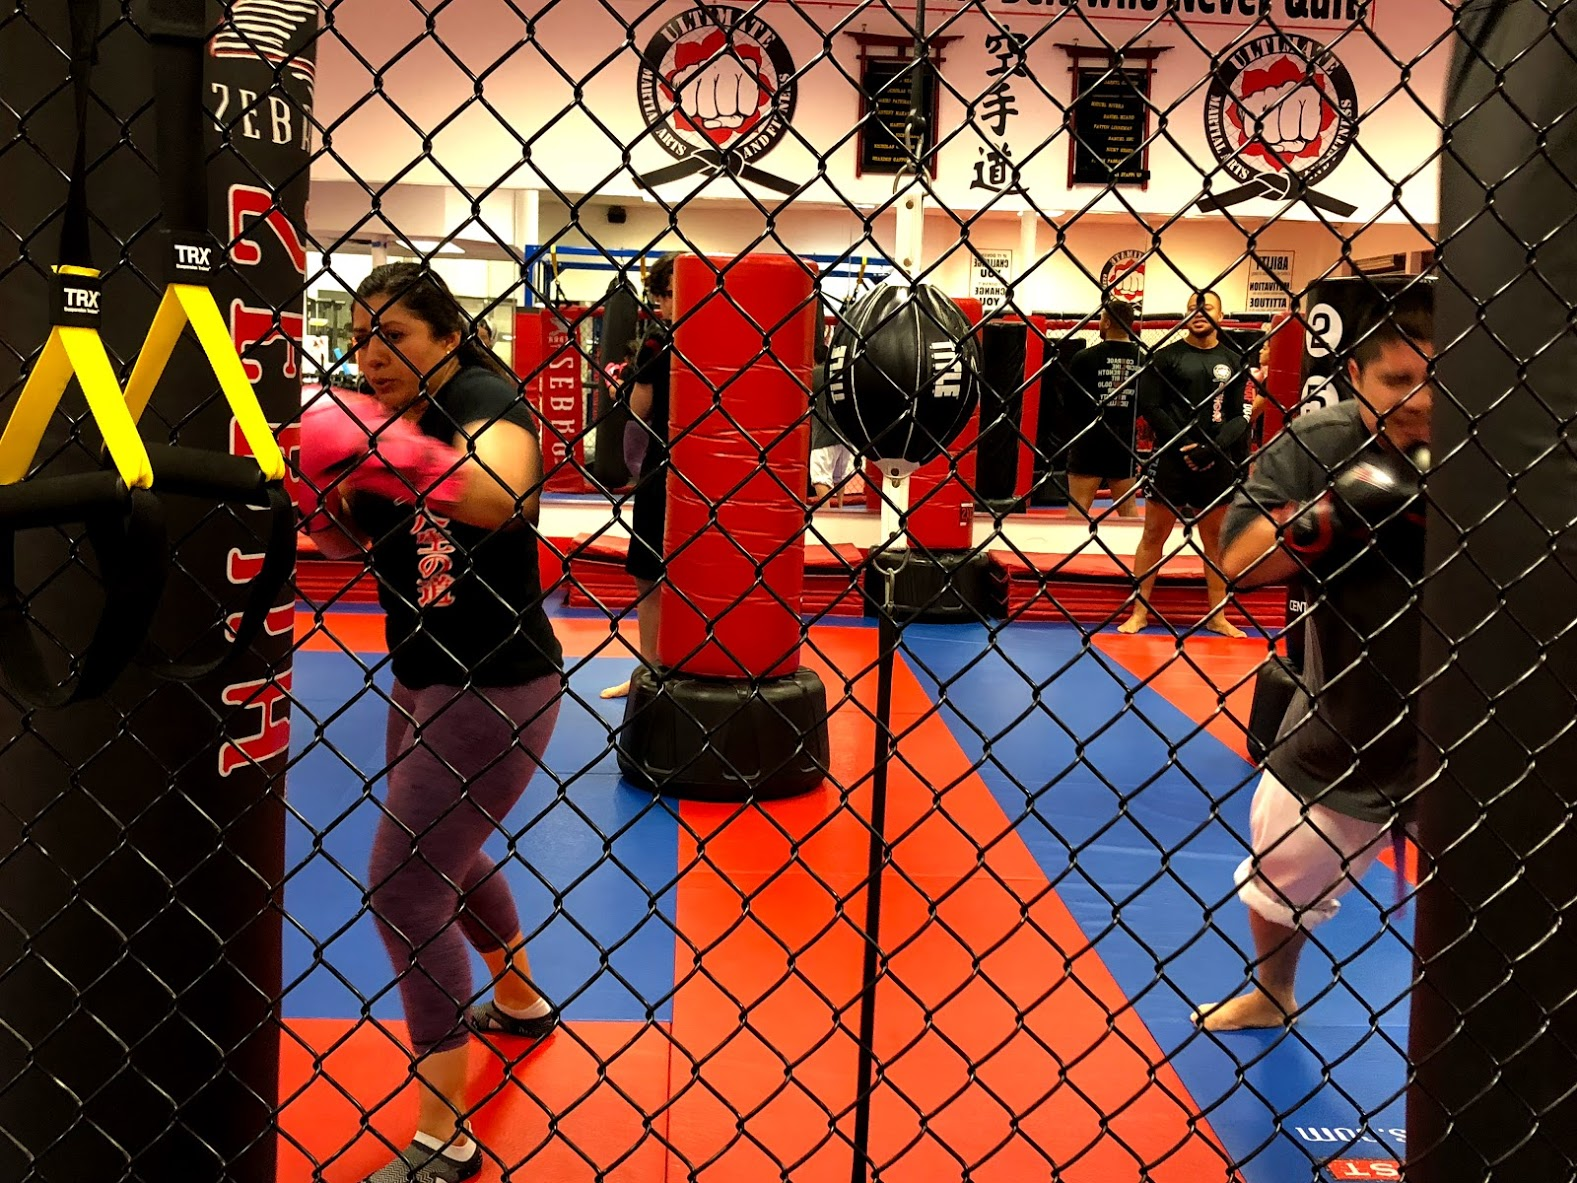 KickBoxing From Behind Fence.jpg